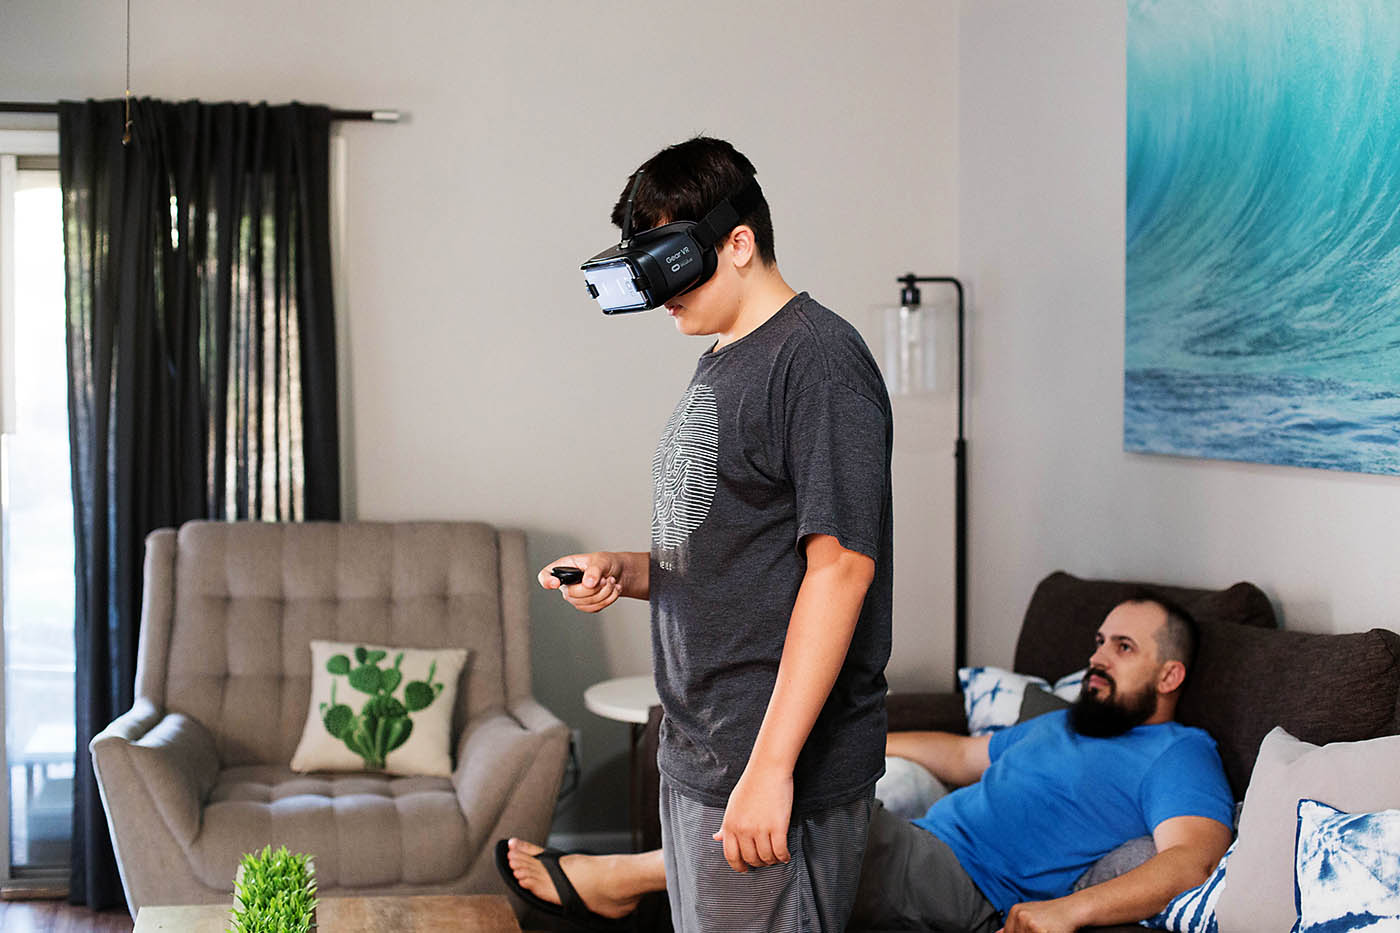 Bonding over technology with Intel True VR